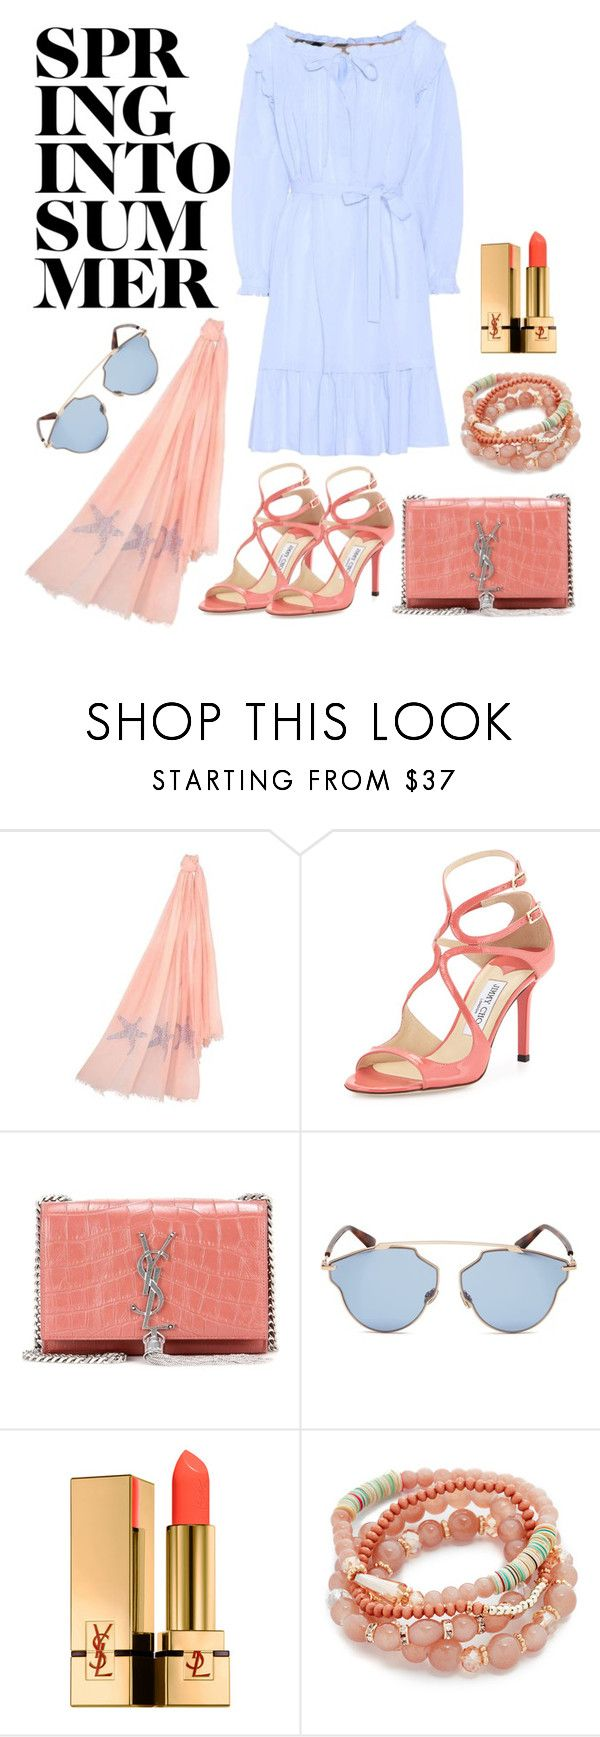 """Spring into summer"" by cashmererebeluk ❤ liked on Polyvore featuring Jimmy Choo, Yves Saint Laurent, Christian Dior, Shashi, Burberry, Summer, coral, beach, vacation and holiday"